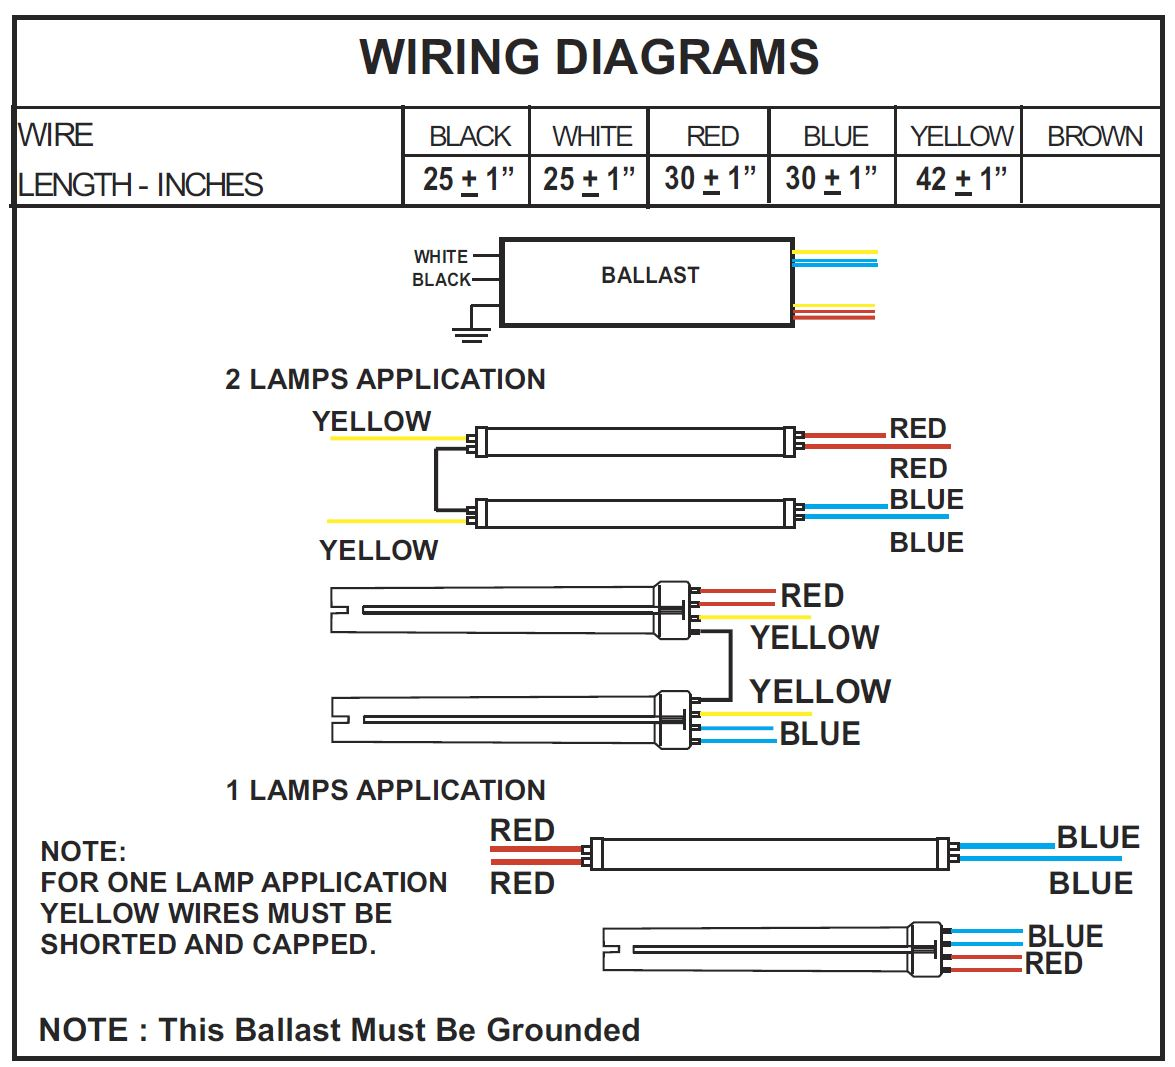 RHA UNV 254 LT5 wiring diagram rha unv 254 lt5 2 lamp t5 multi purpose electronic ballast t5 ballast wiring diagram at eliteediting.co